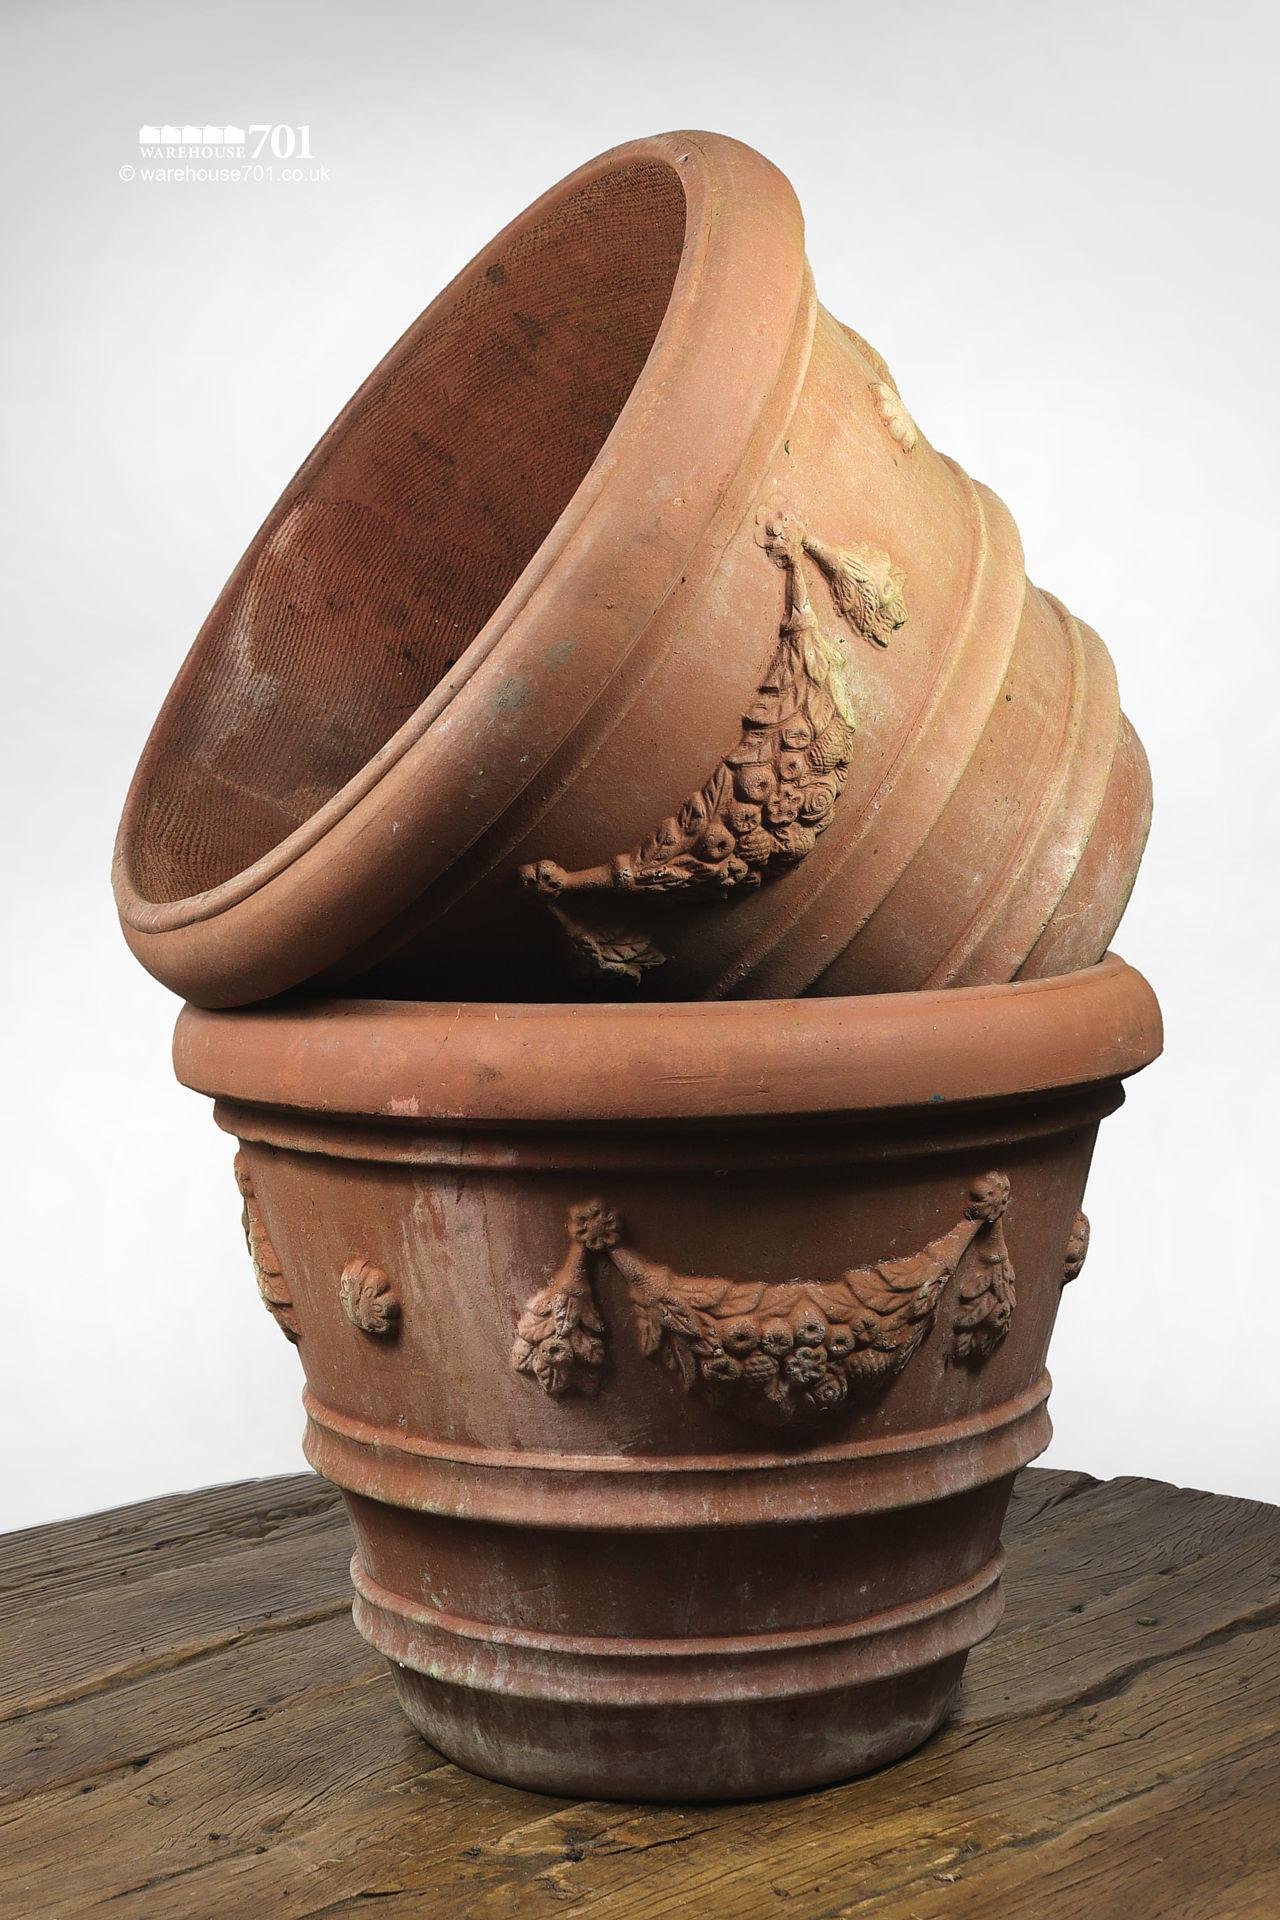 Reclaimed Terracotta Planter with Swag Decor and Double Ribbing #1